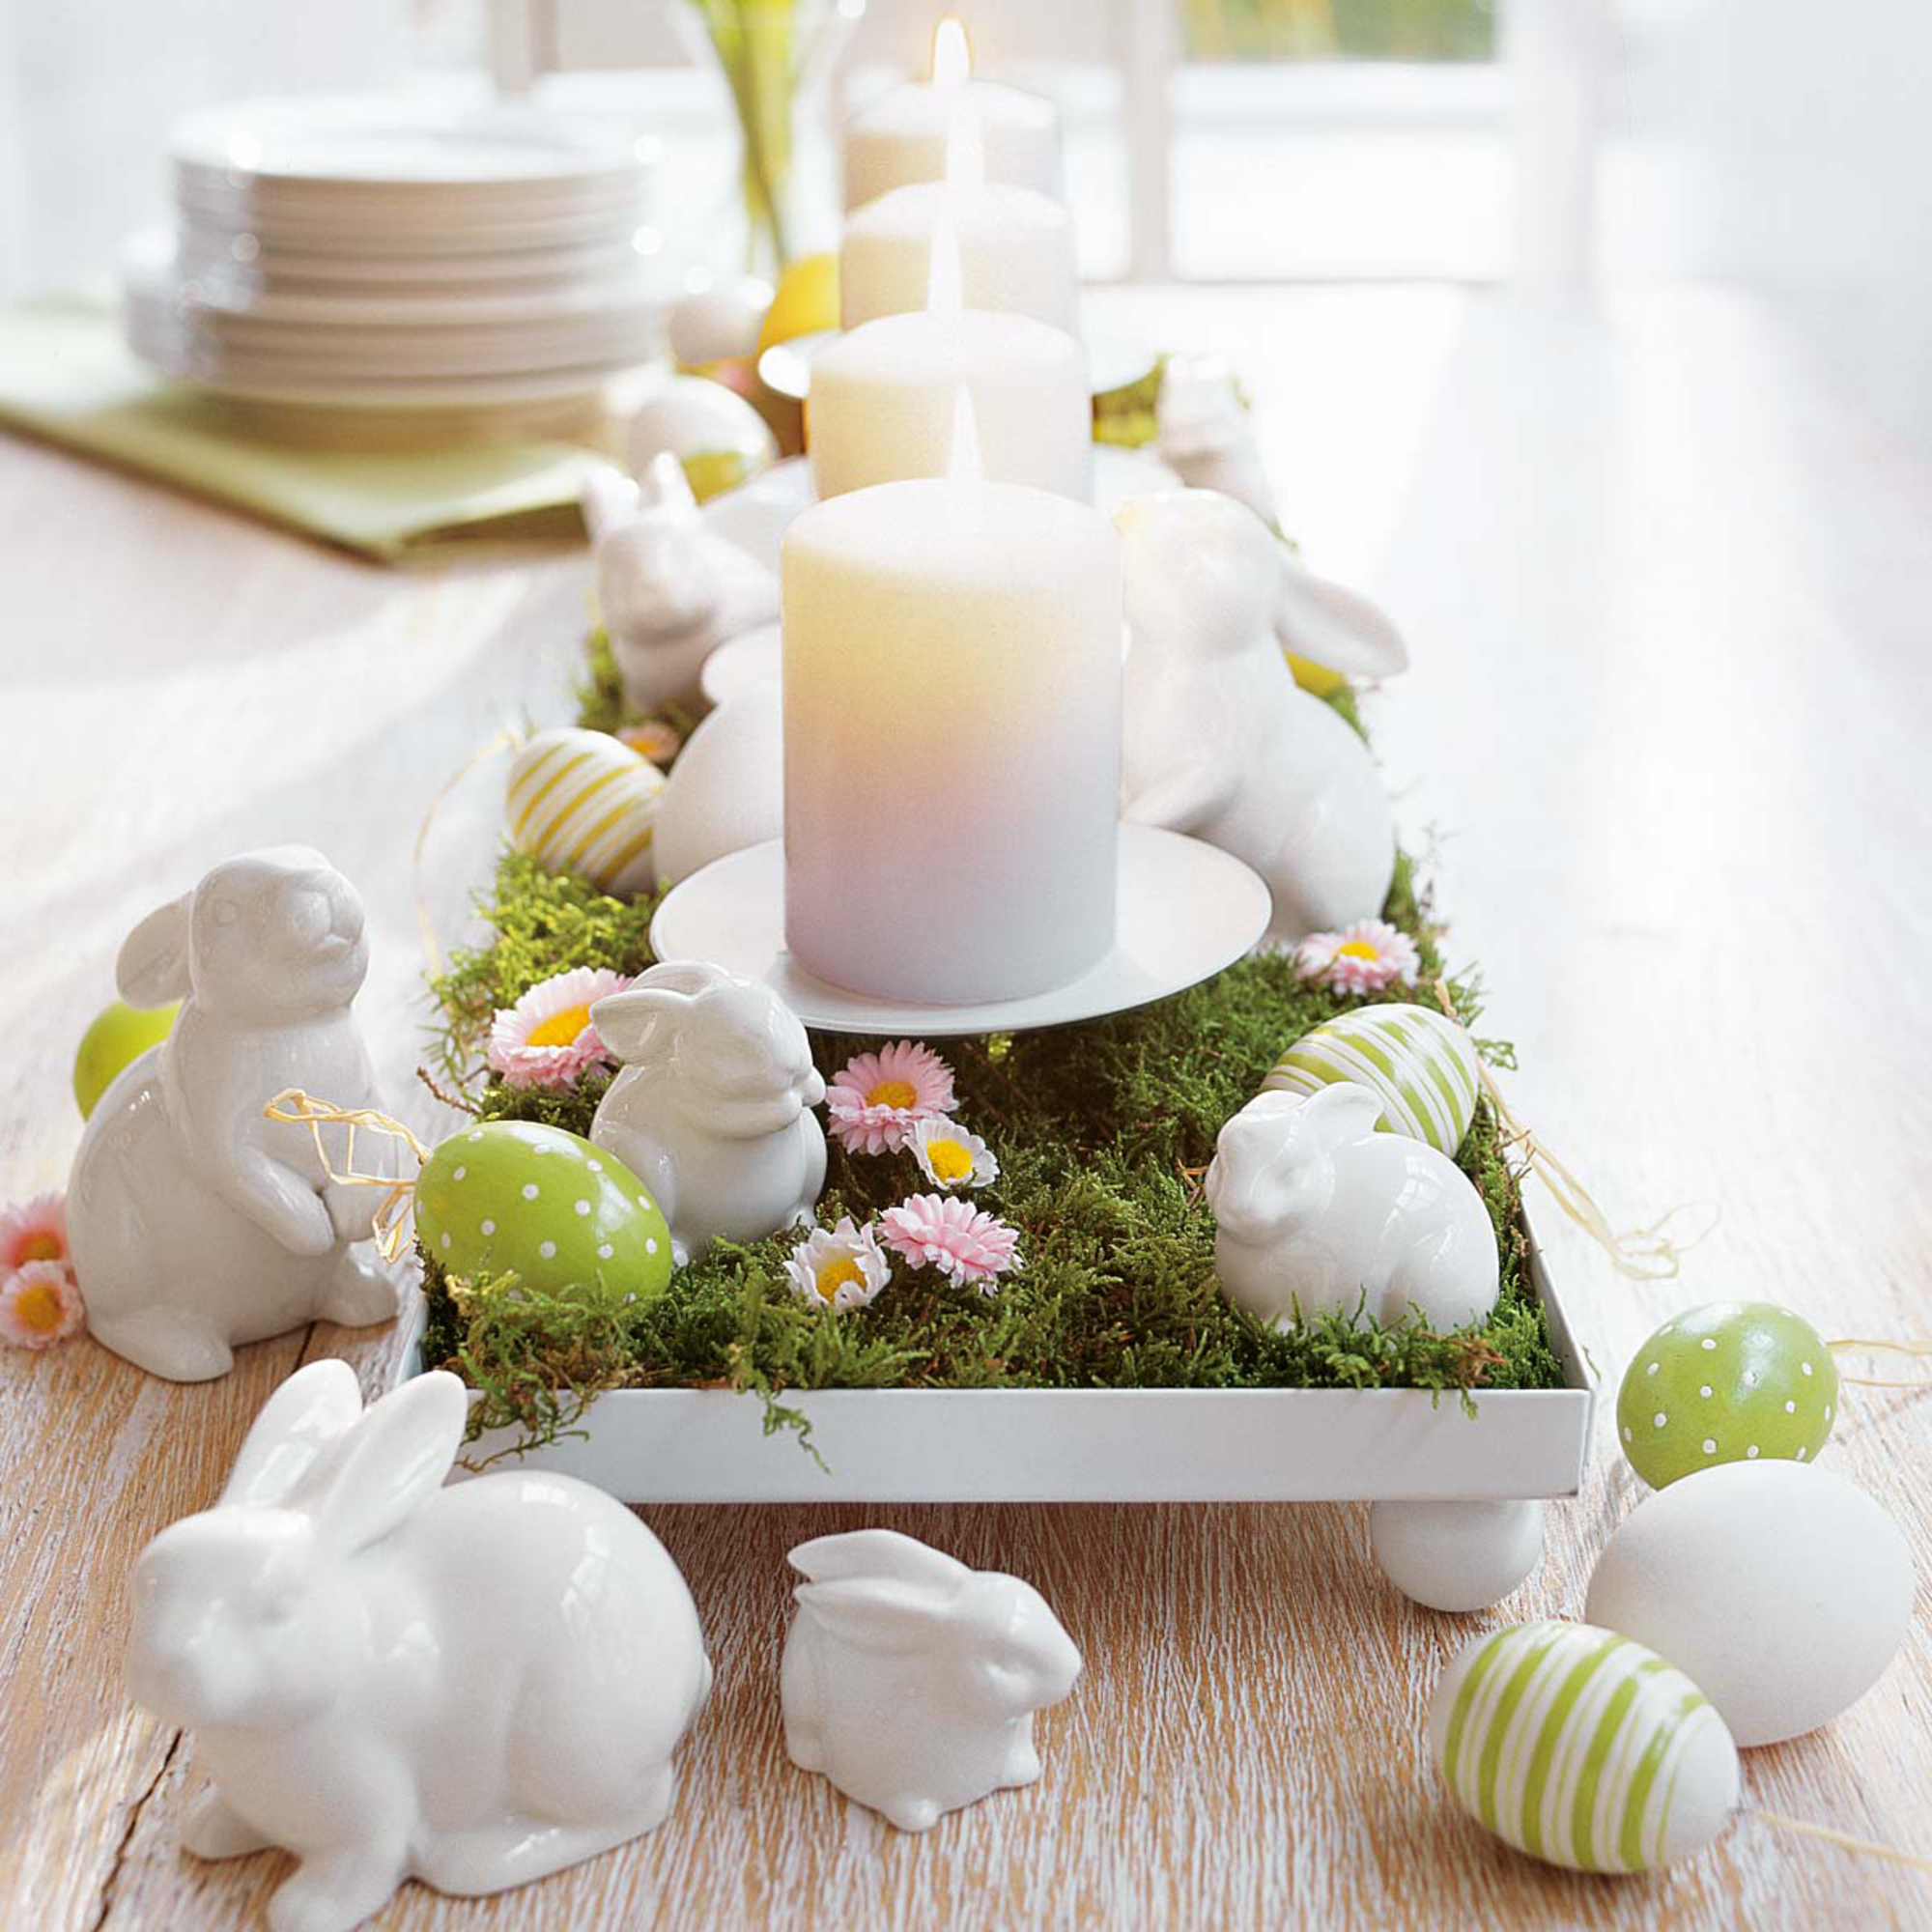 18 Sweet Easter And Spring Decorations - Live DIY Ideas